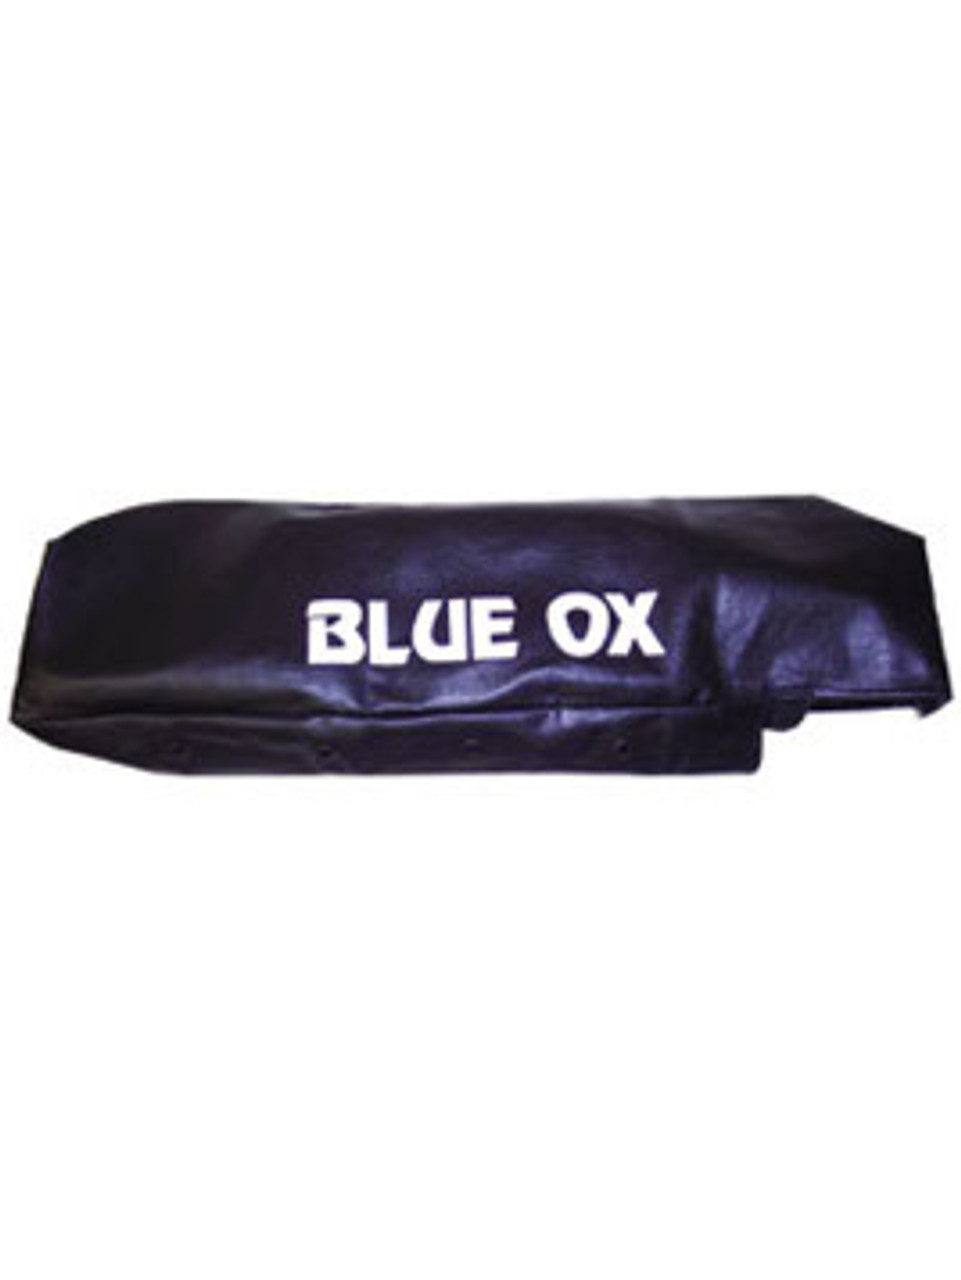 BX88309 --- Blue Ox Tow Bar Cover for the Avail, Ascent & Apollo